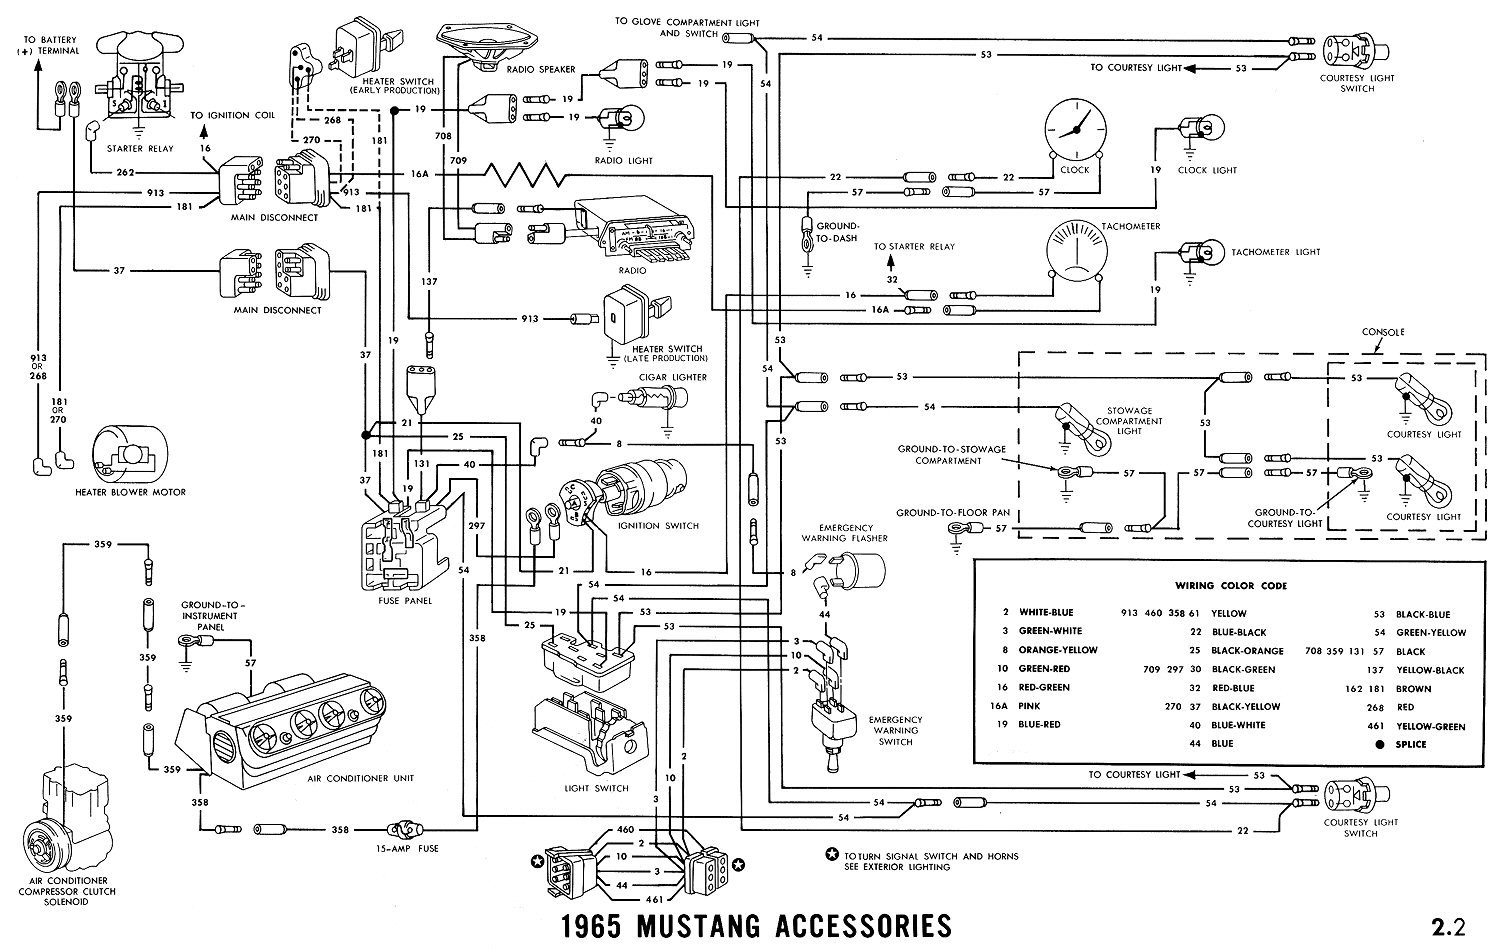 hight resolution of 93554d1268999911 1965 mustang radio wiring connections 1965i 1965 mustang radio wiring connections